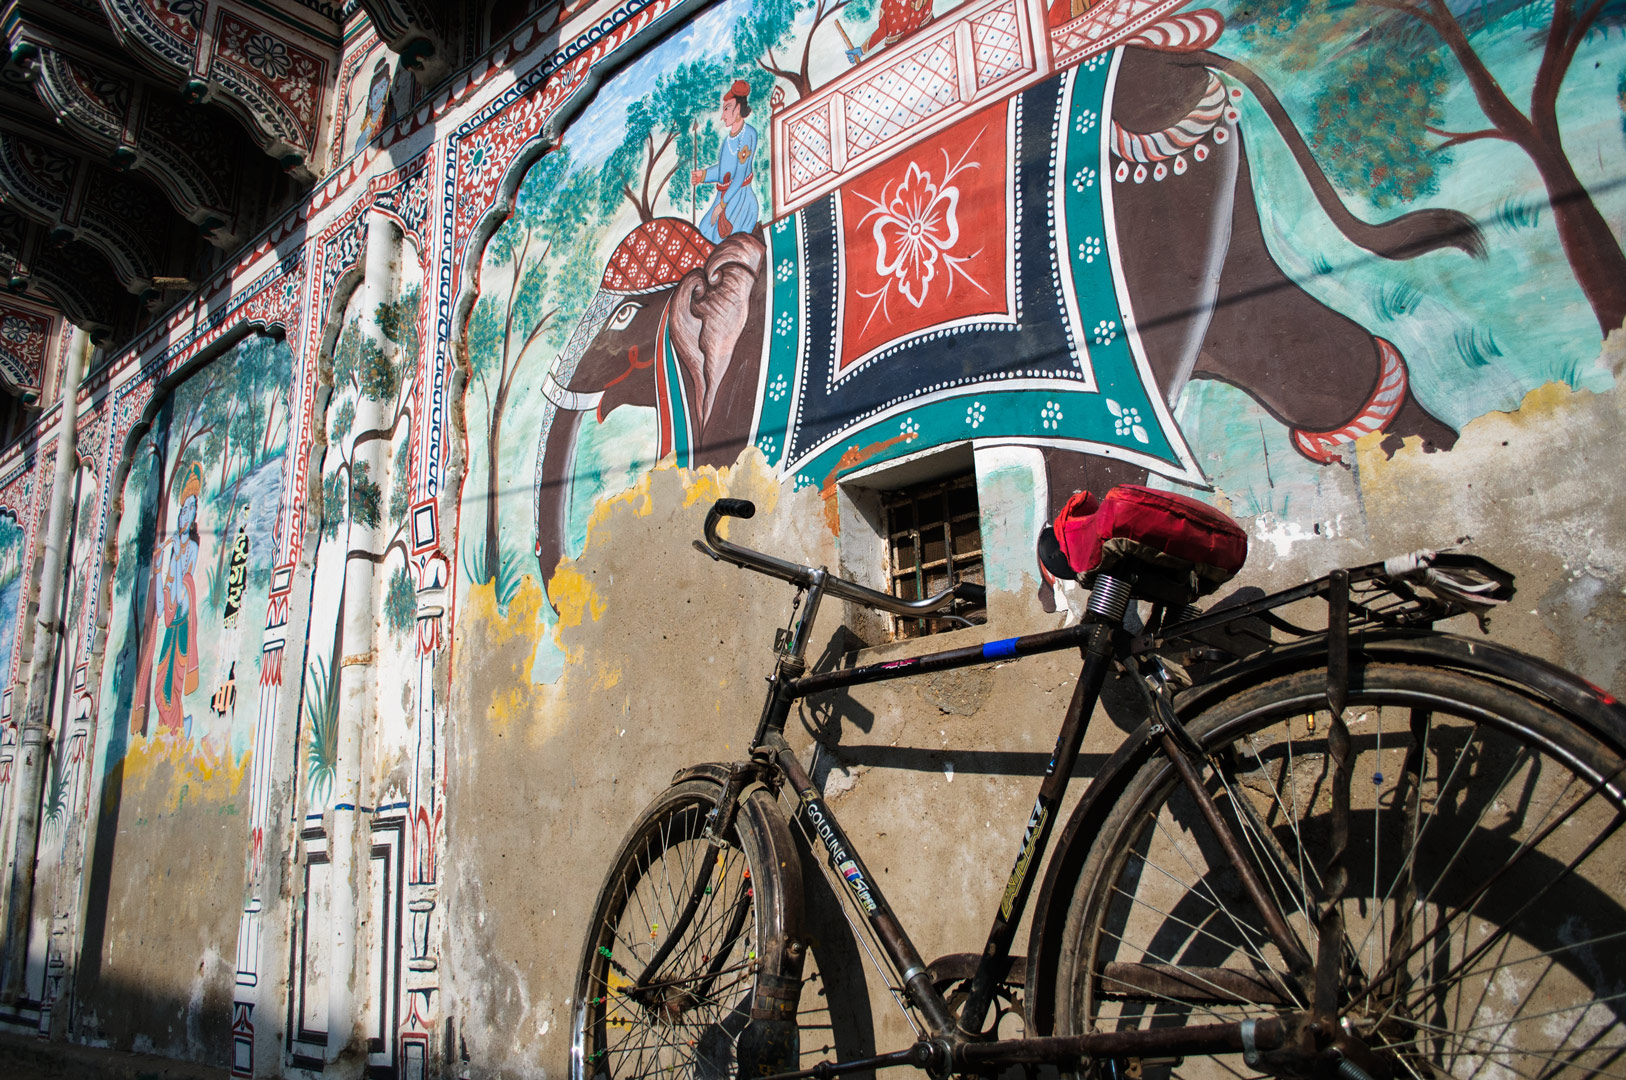 An Indian bike leans against a painted wall in the Shekhawati region of North India.